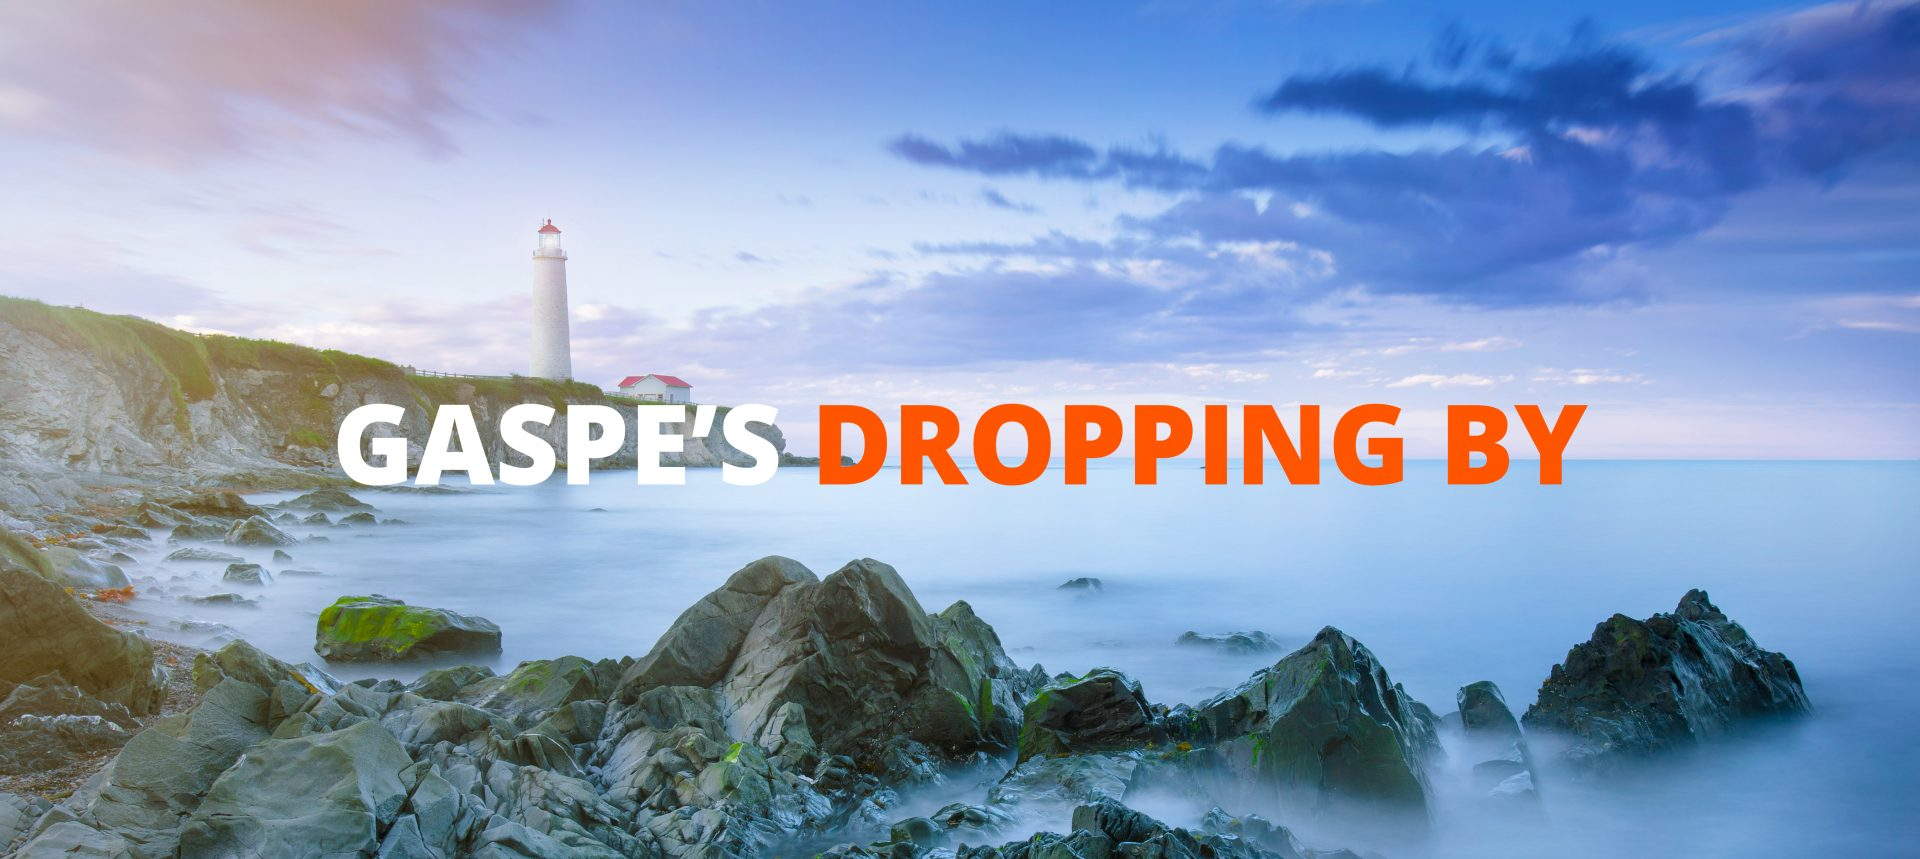 Gaspe's dropping by